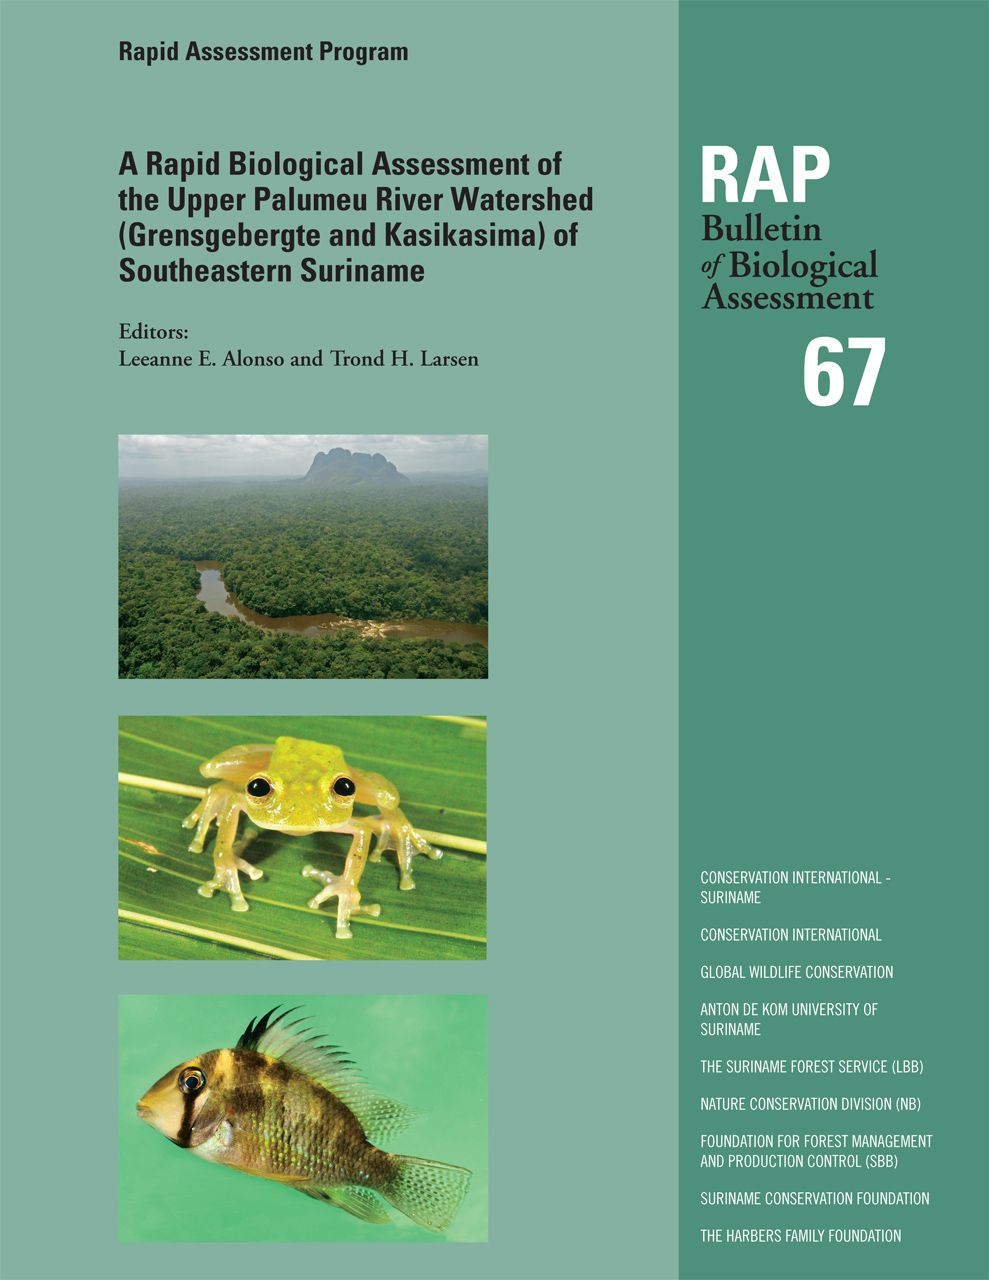 A Rapid Biological Assessment of the Upper Palumeu River Watershed (Grensgebergte and Kasikasima) of Southeastern Suriname